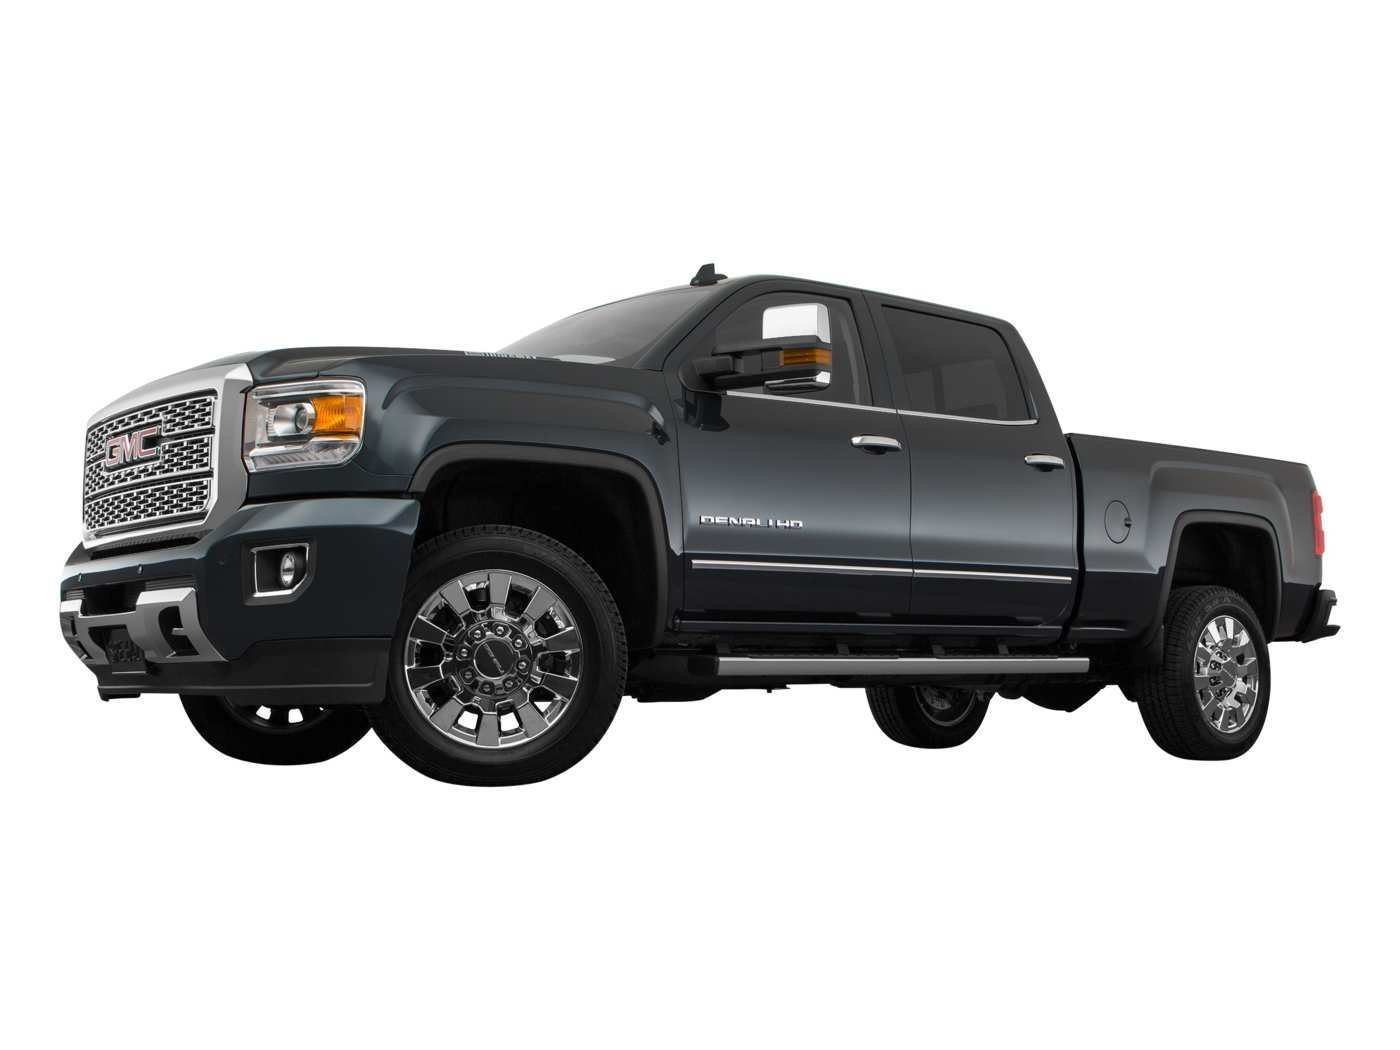 83 Great Best Gmc 2019 Sierra 2500 Picture Release Date And Review Exterior and Interior for Best Gmc 2019 Sierra 2500 Picture Release Date And Review